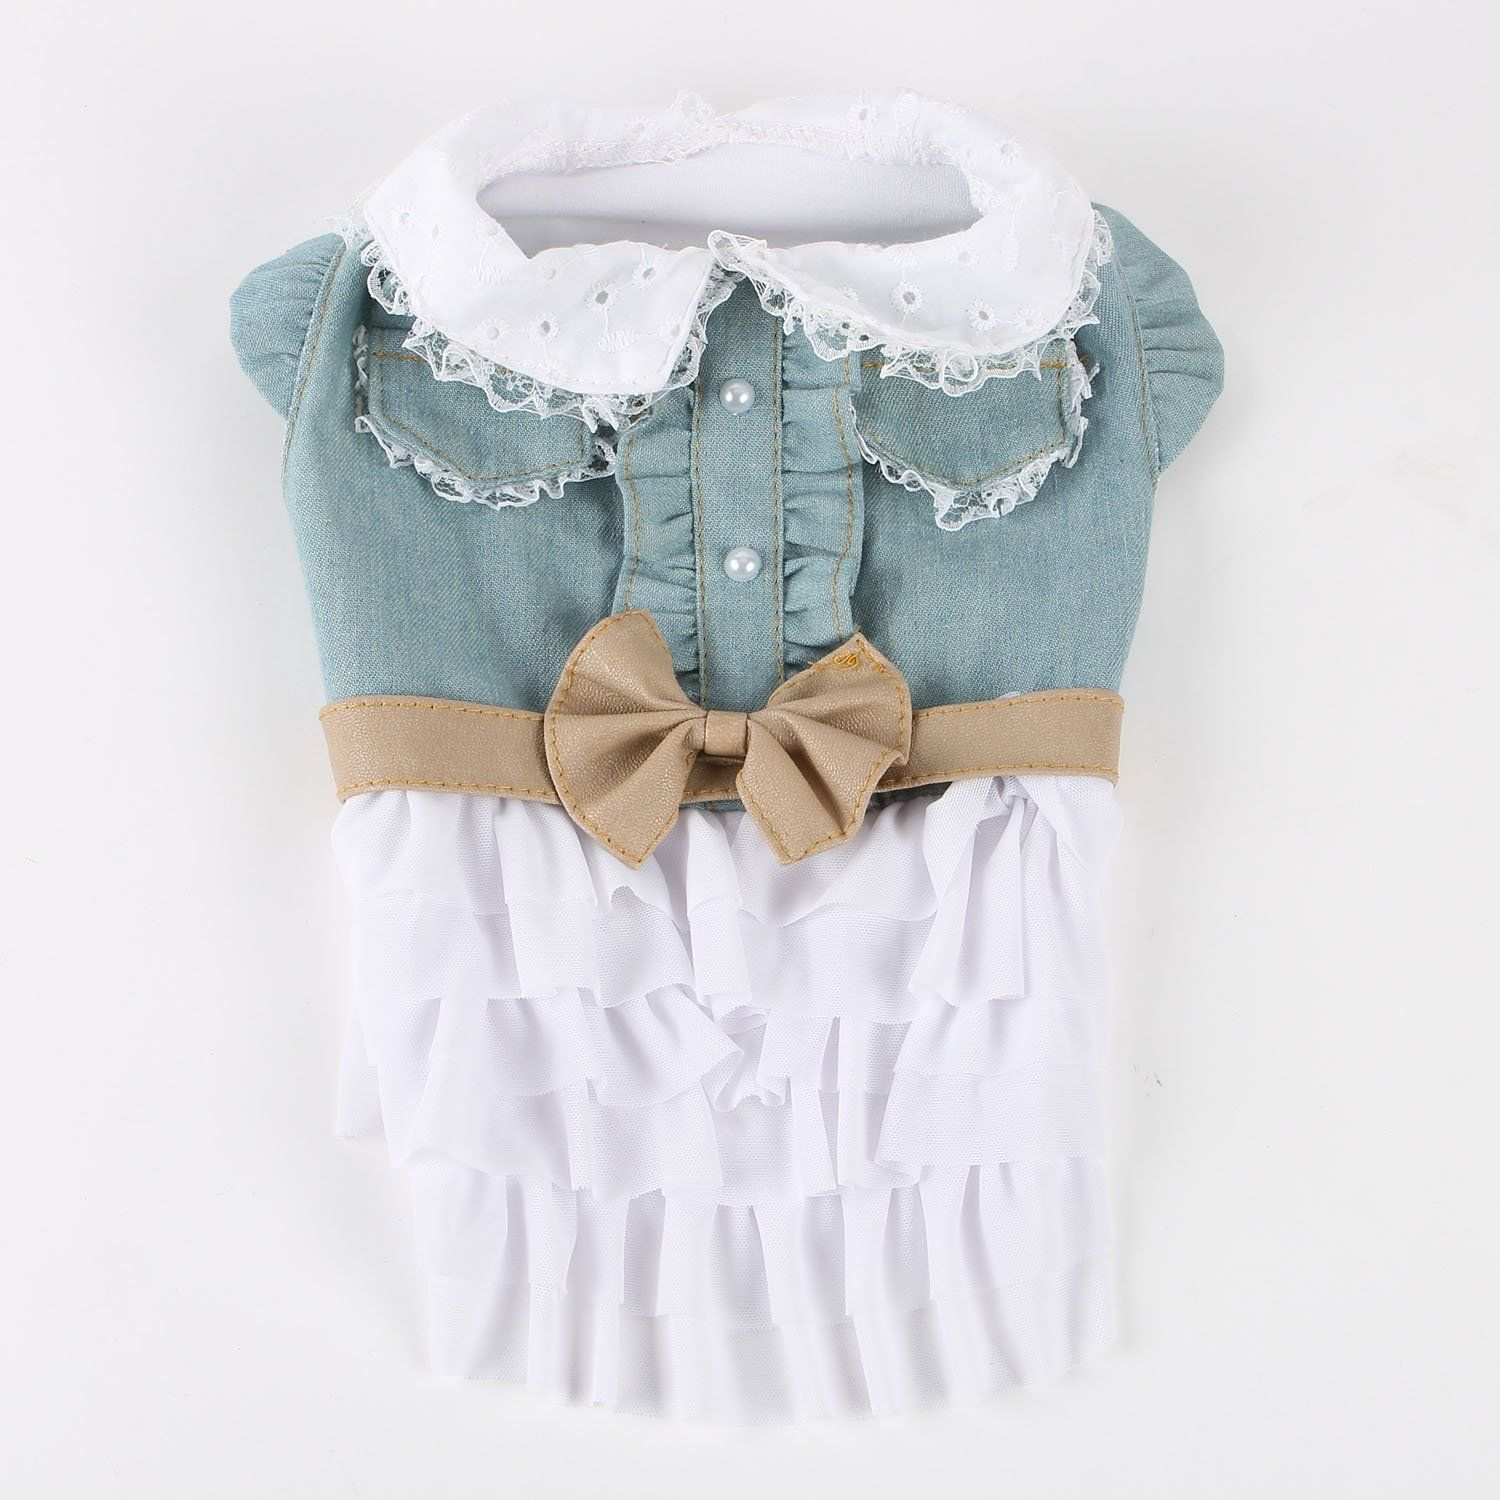 Commoditier denim lace dog cat skirt cute puppy summer dress girl